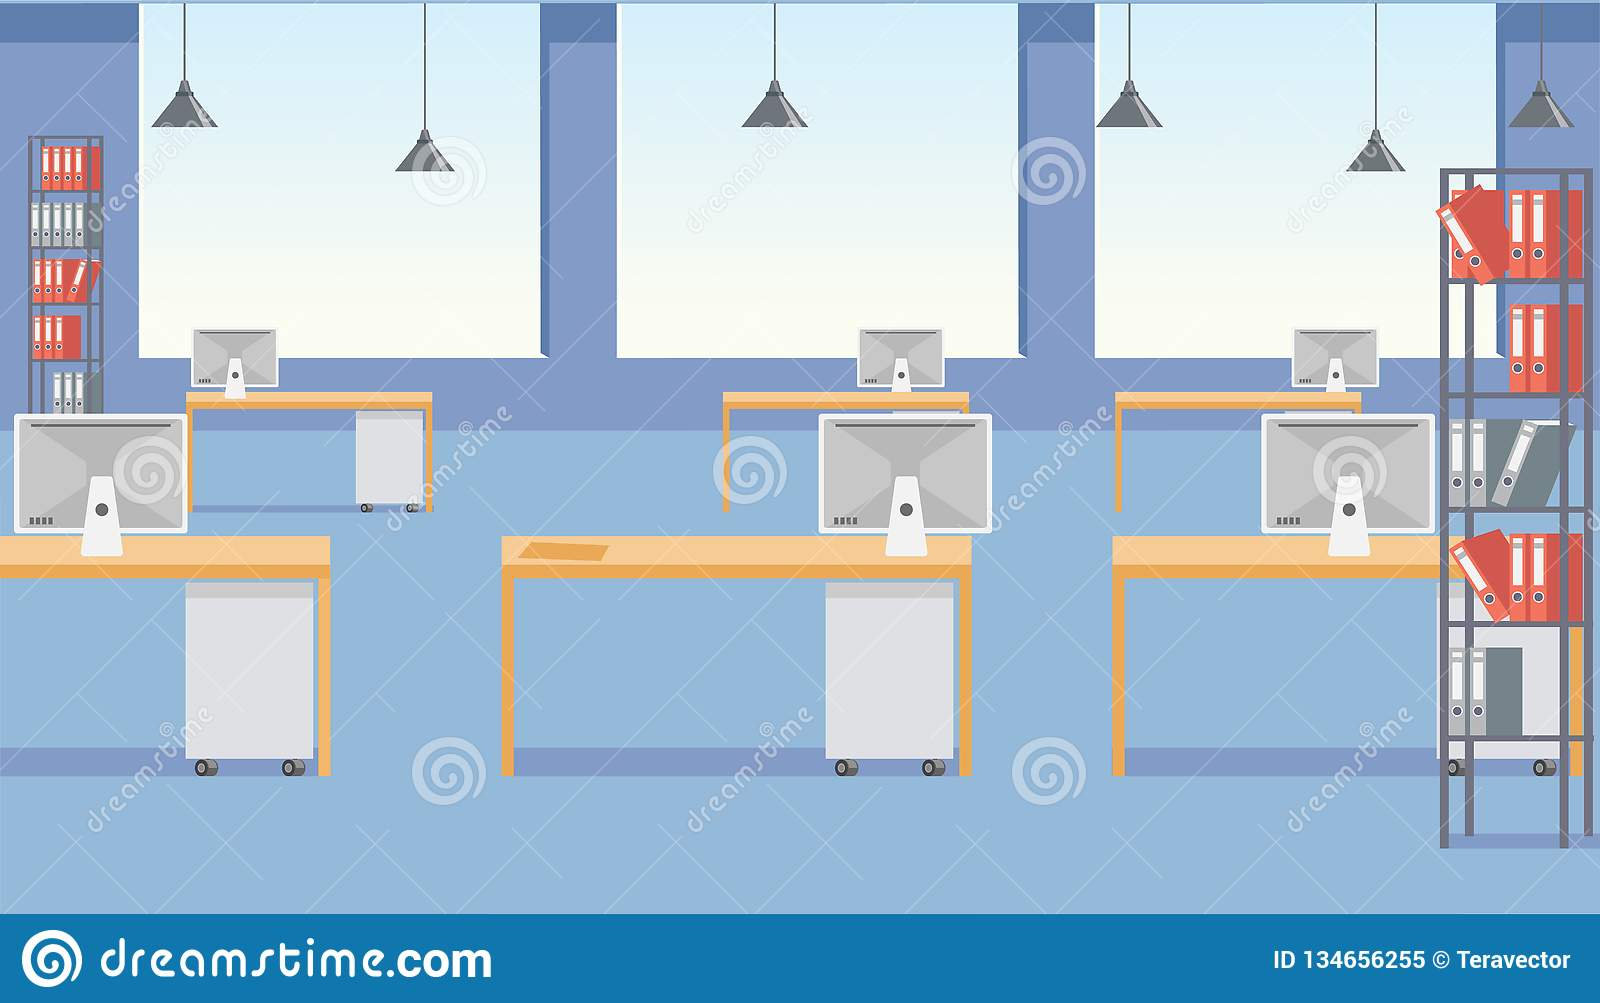 Design Studio, Web Developing Company, Educational Startup, Coworking  Business Center Roomy Office Space Empty Interior With Big Windows, Binders  On Racks ...